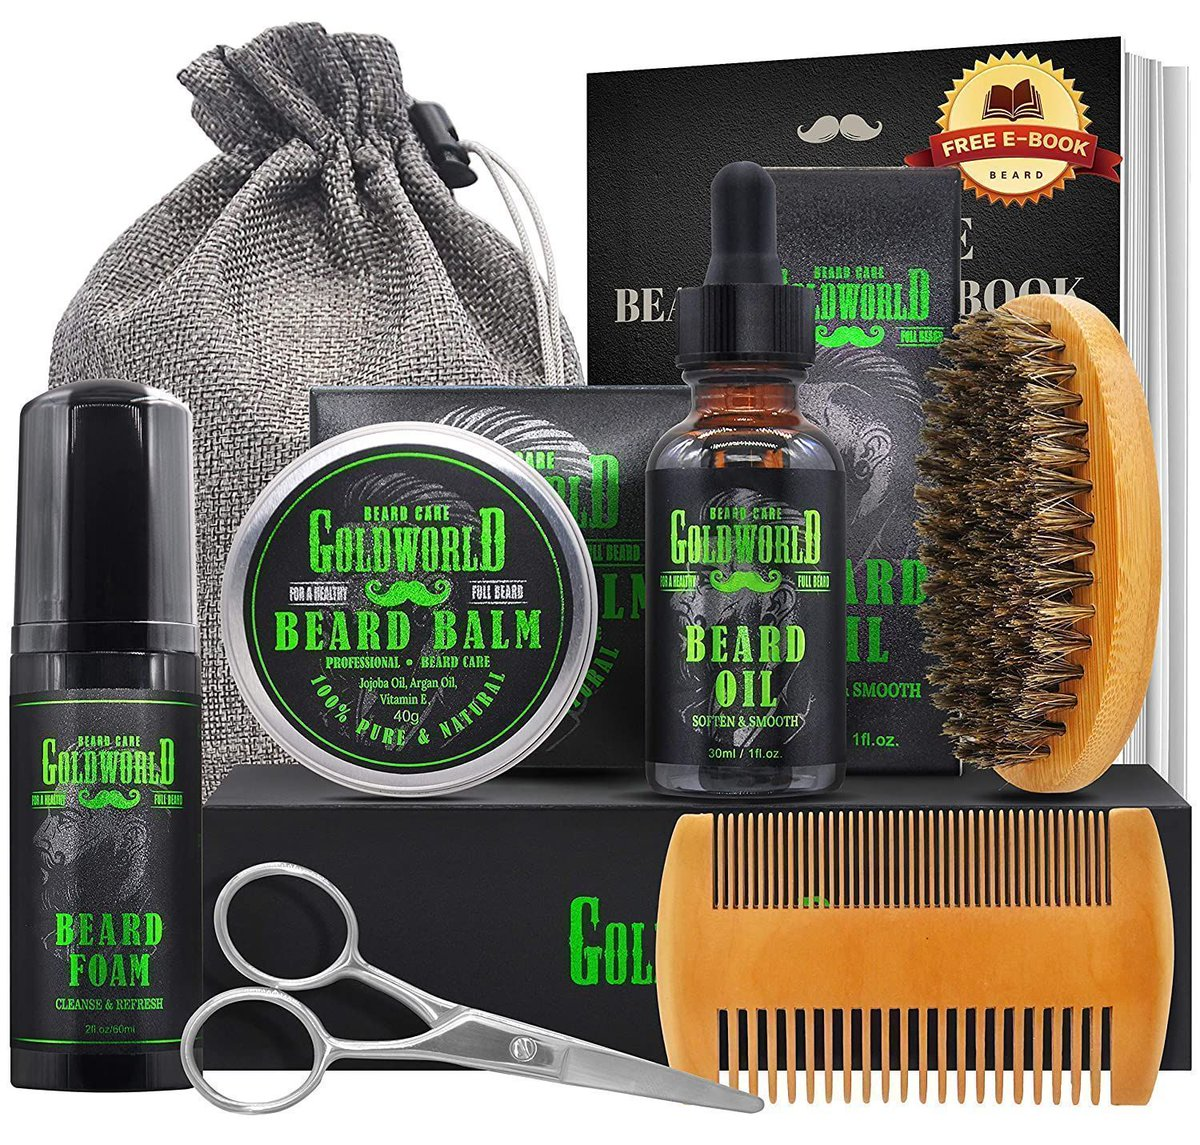 ad: $8.52   Beard Growth Grooming Kit   CLIP THE COUPON ON PAGE    Link0  Link0